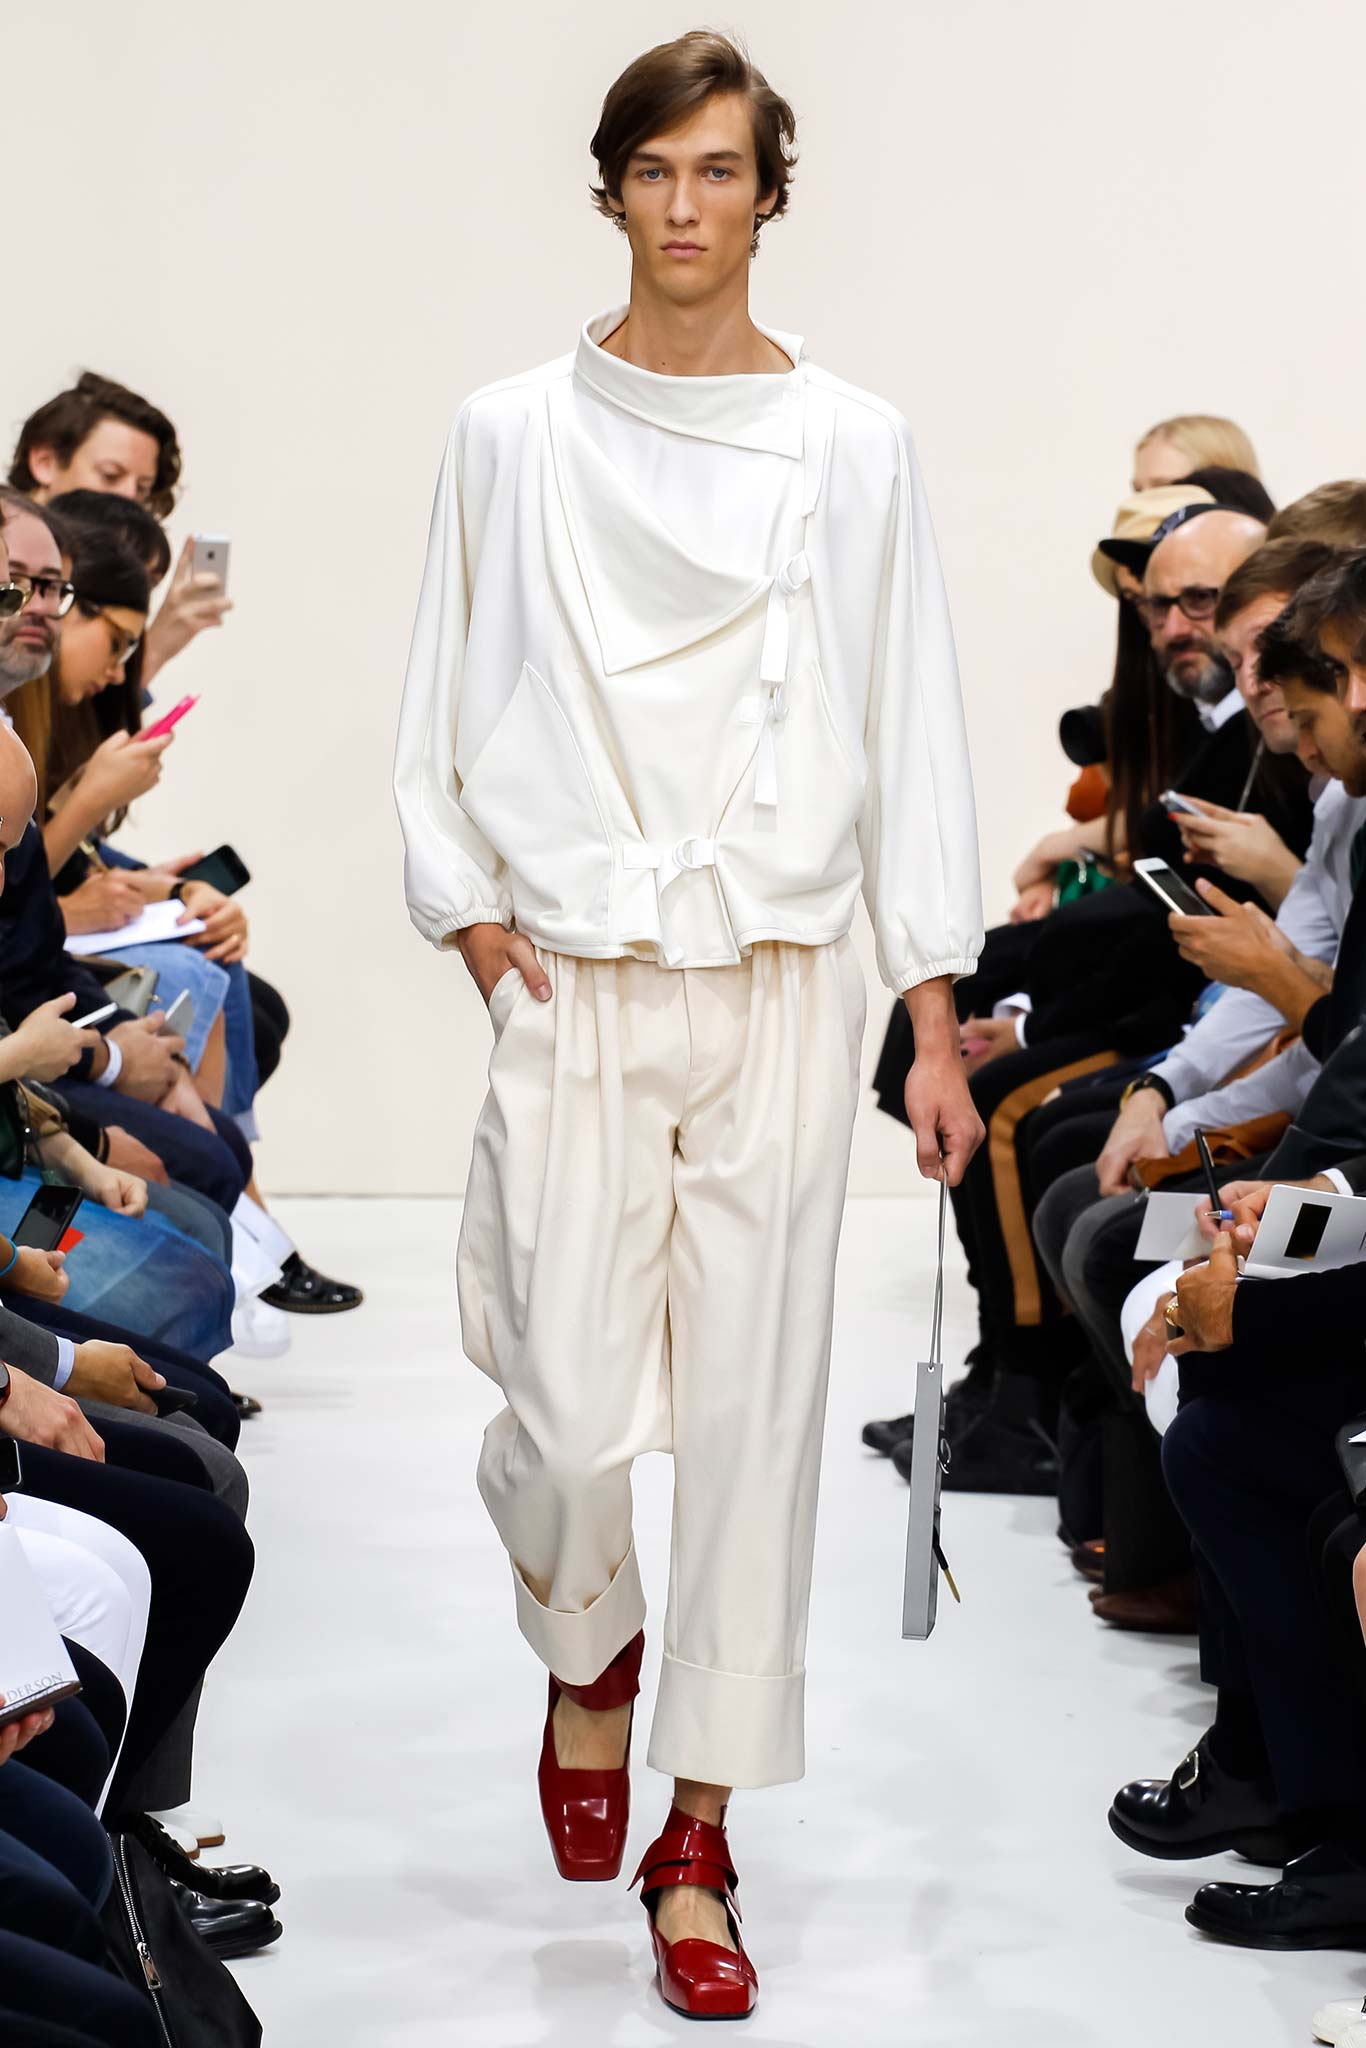 J.W. Anderson Menswear SS 2016 London